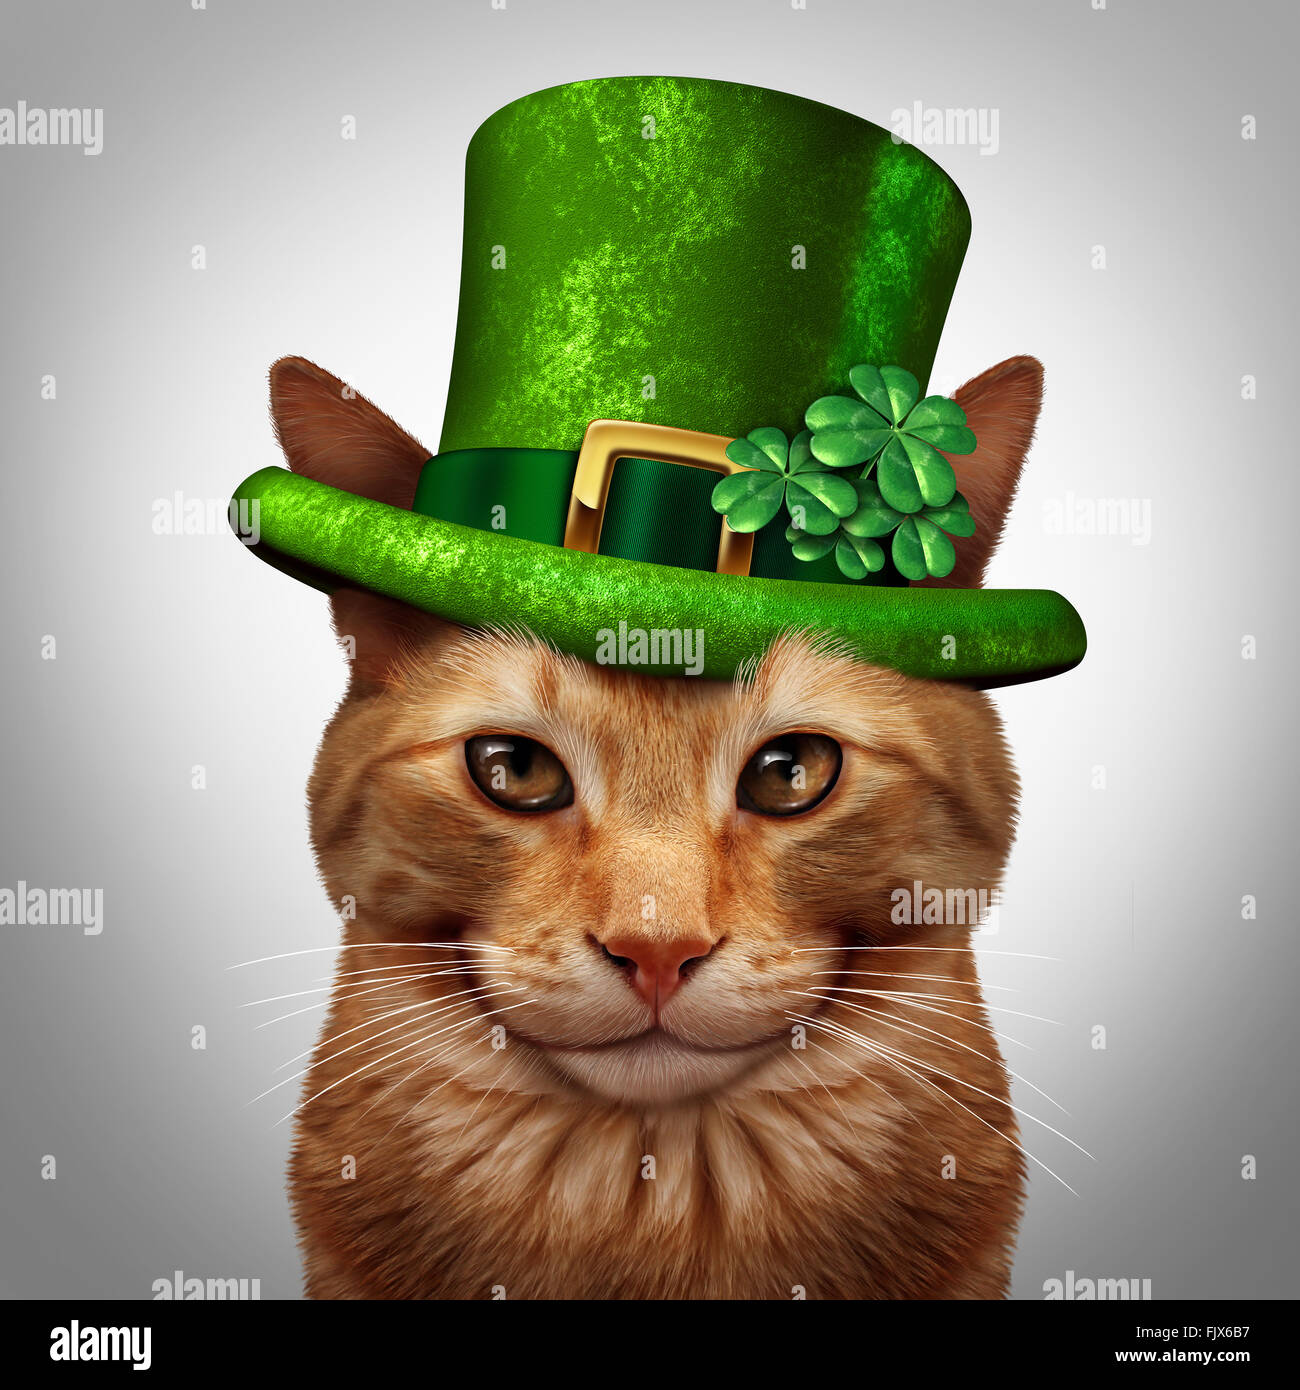 Saint Patricks day cat concept as a fun happy smiling feline pet wearing a leprechuan green hat with shamrock four - Stock Image